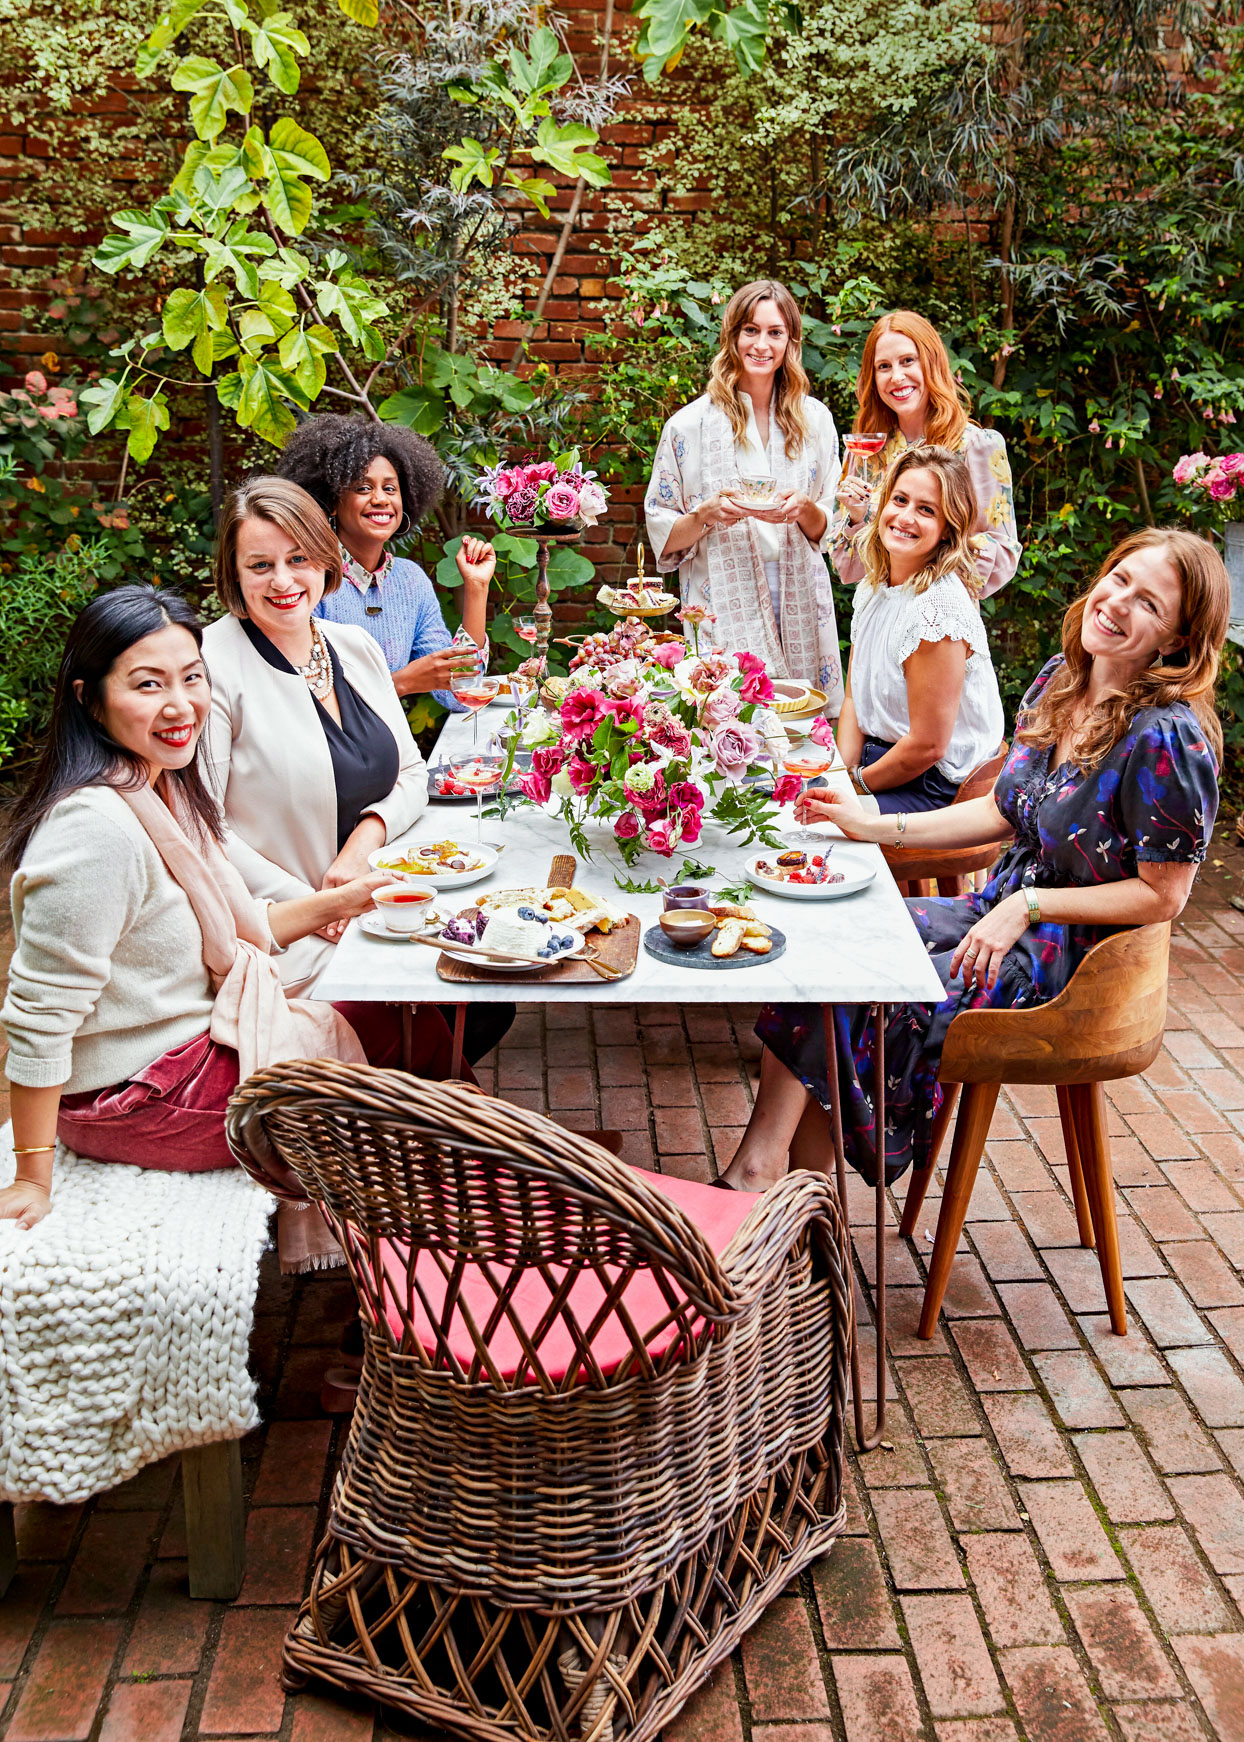 women at garden party at table